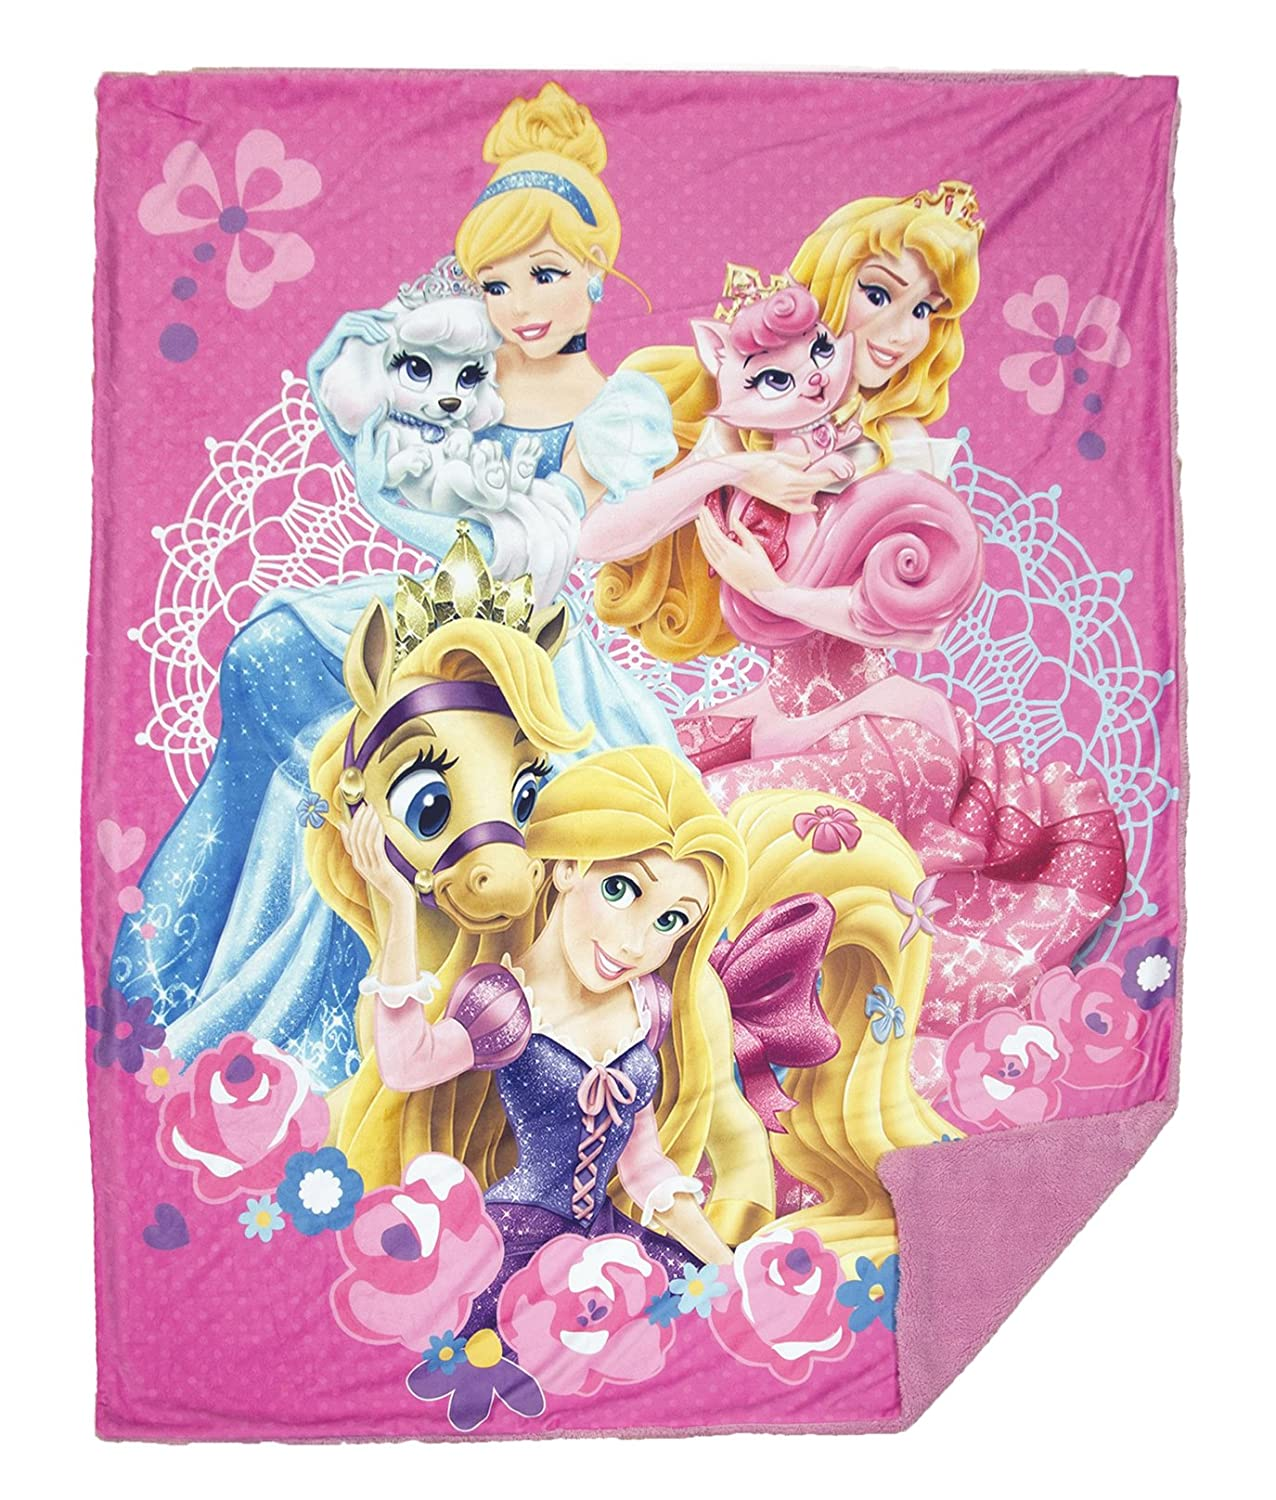 Disney Princess Cozy Throw Blanket 50 X 60 in Soft & Cozy Reverses to Sherpa